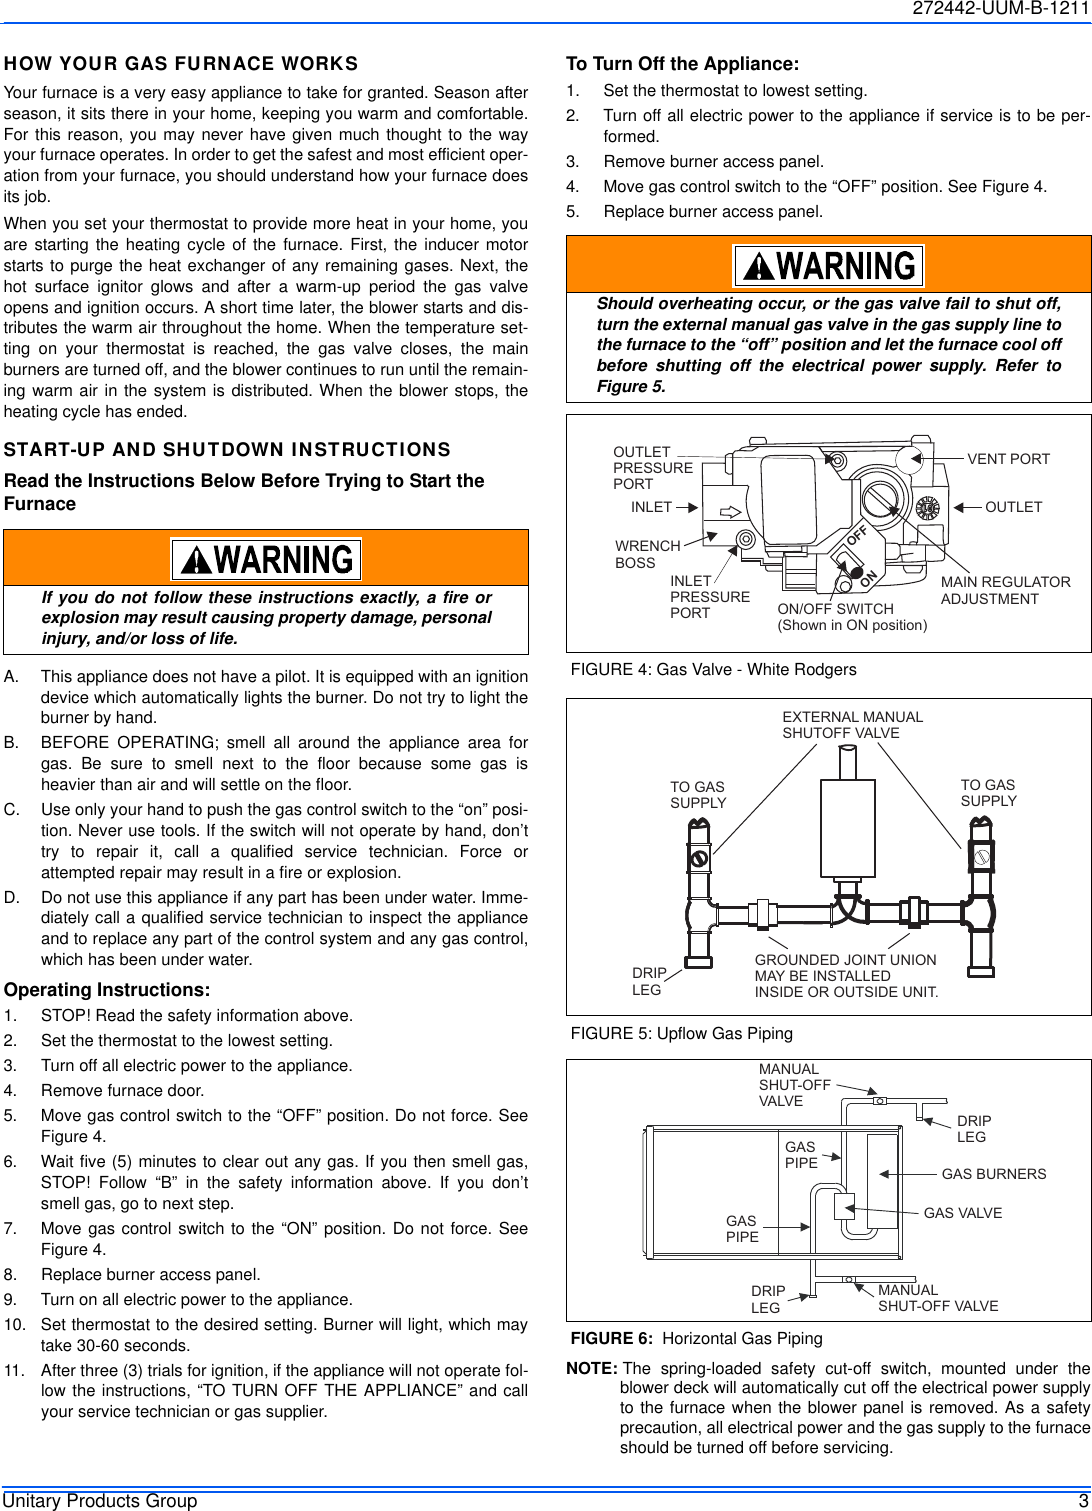 York Commercial Gy8s E Furnace Users Manual 272442 Uum B 1211 Gas Schematic Page 3 Of 12